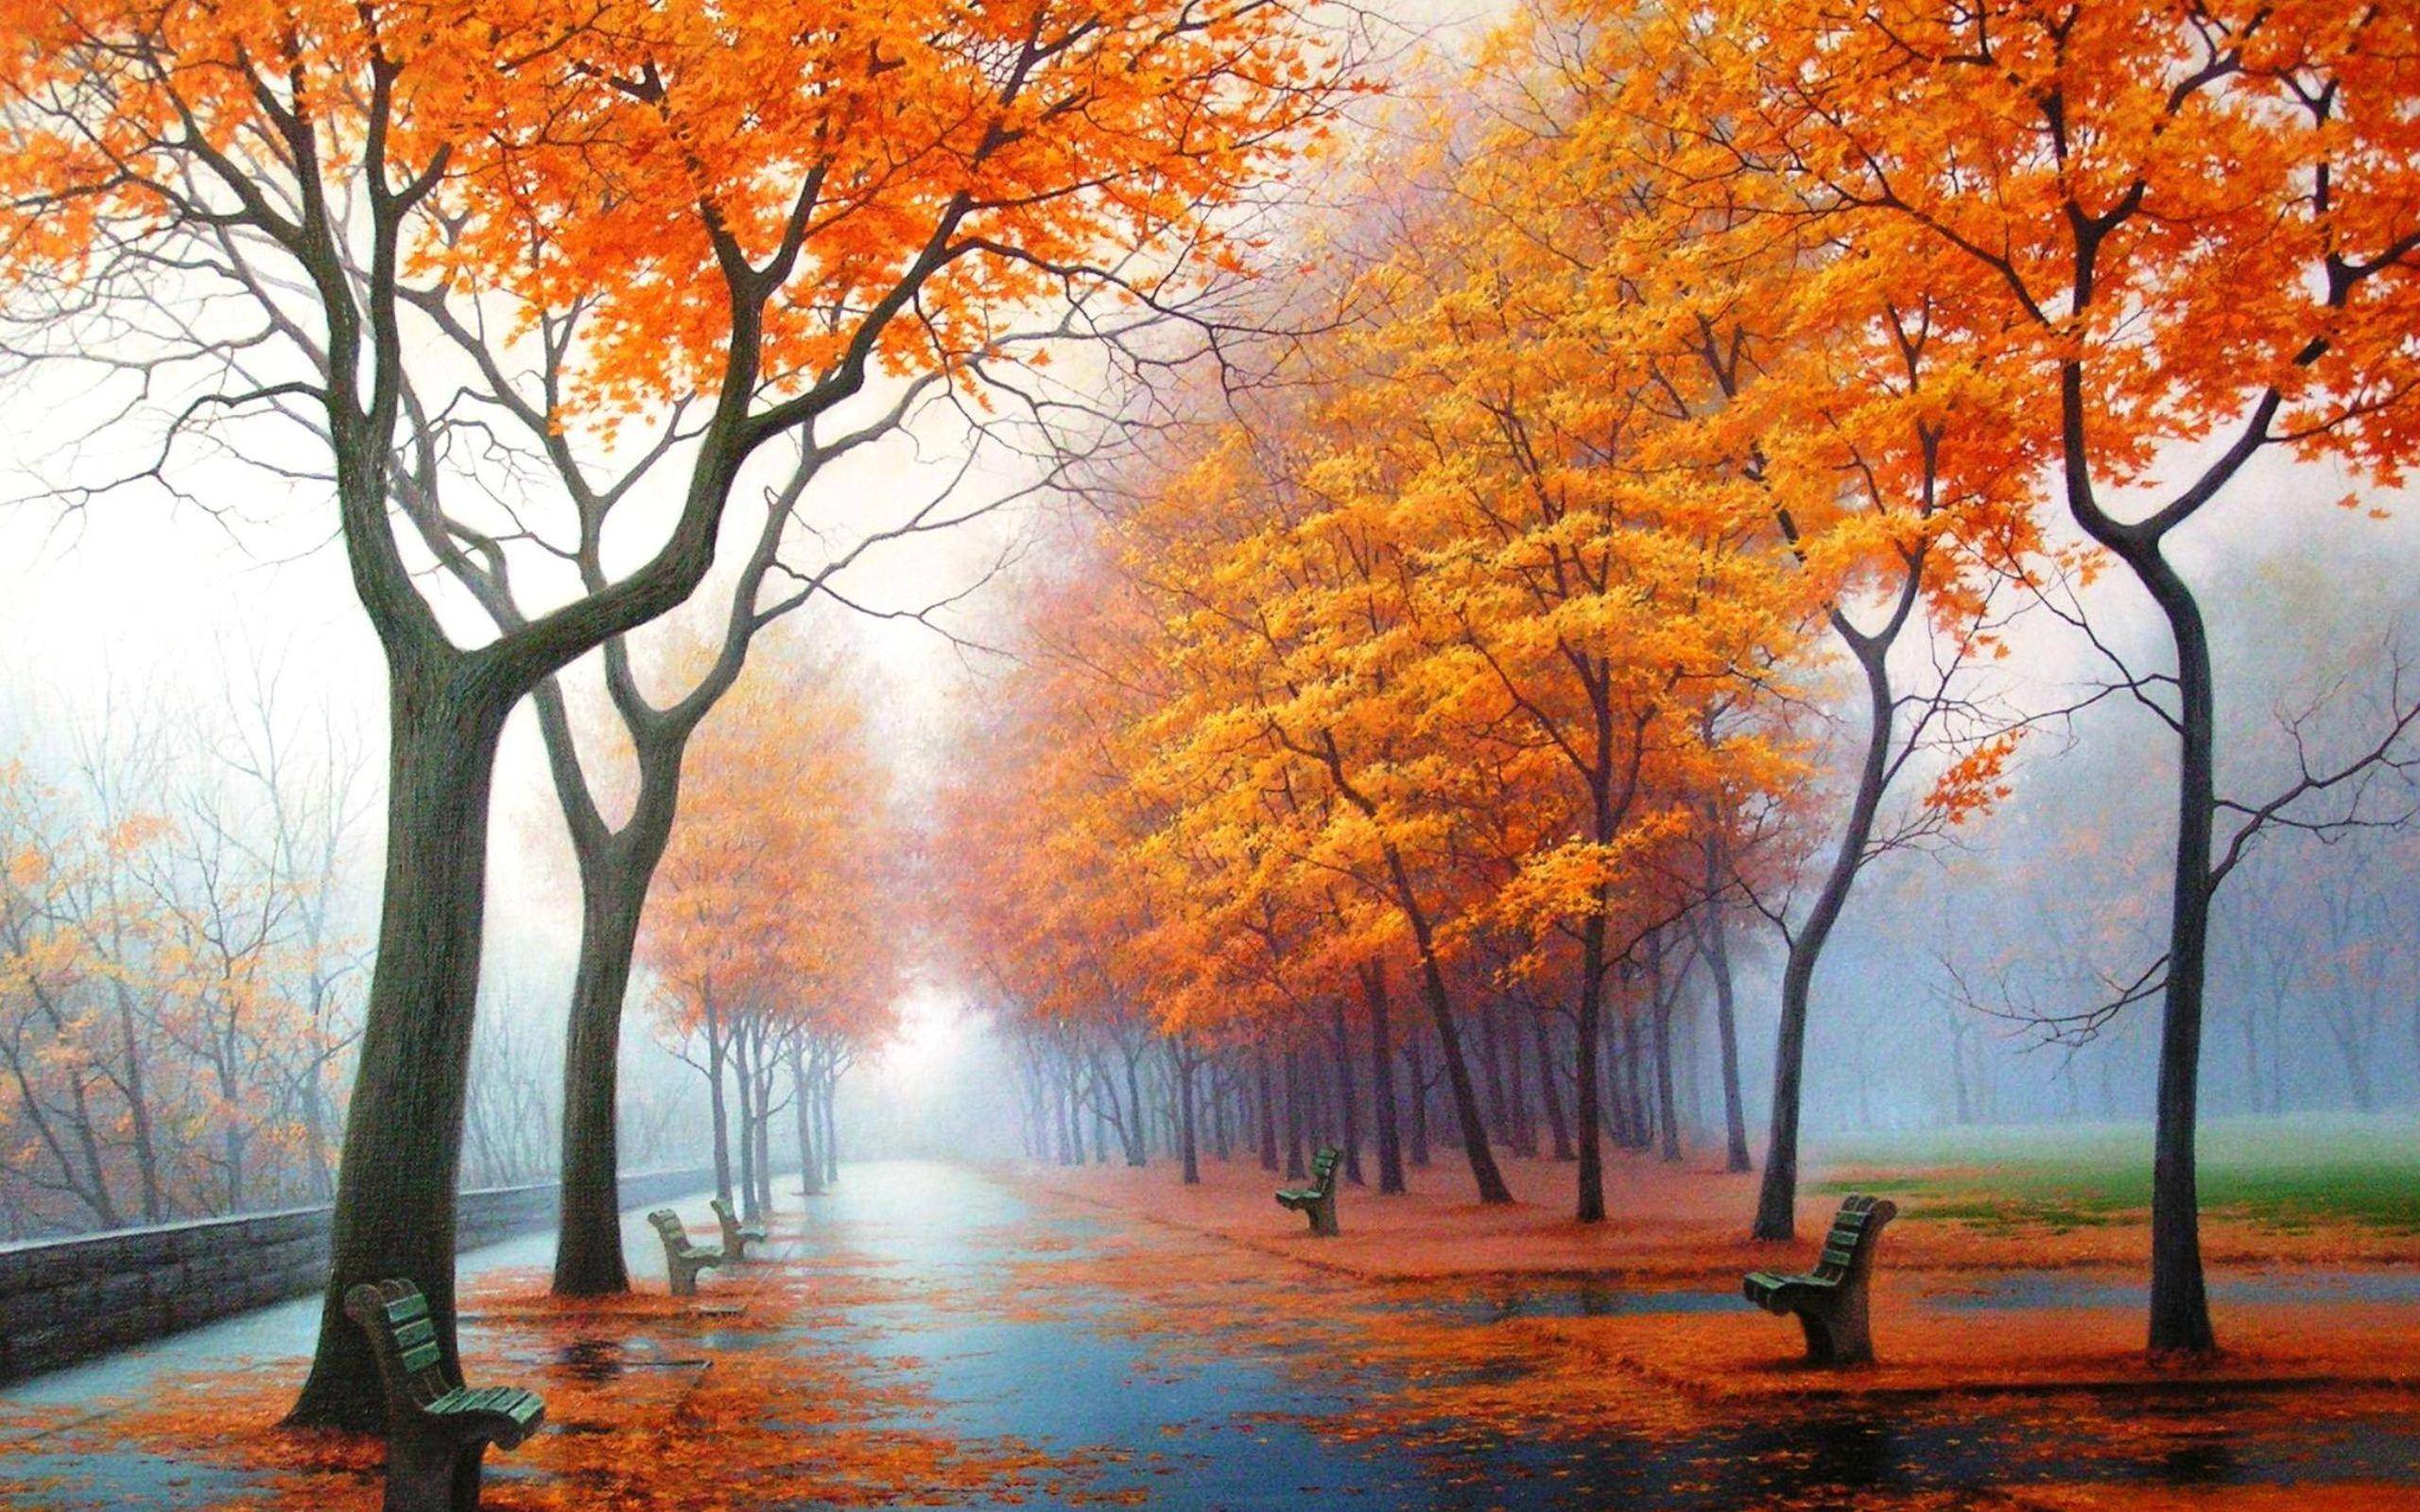 water Landscapes Trees autumn HD Wallpaper